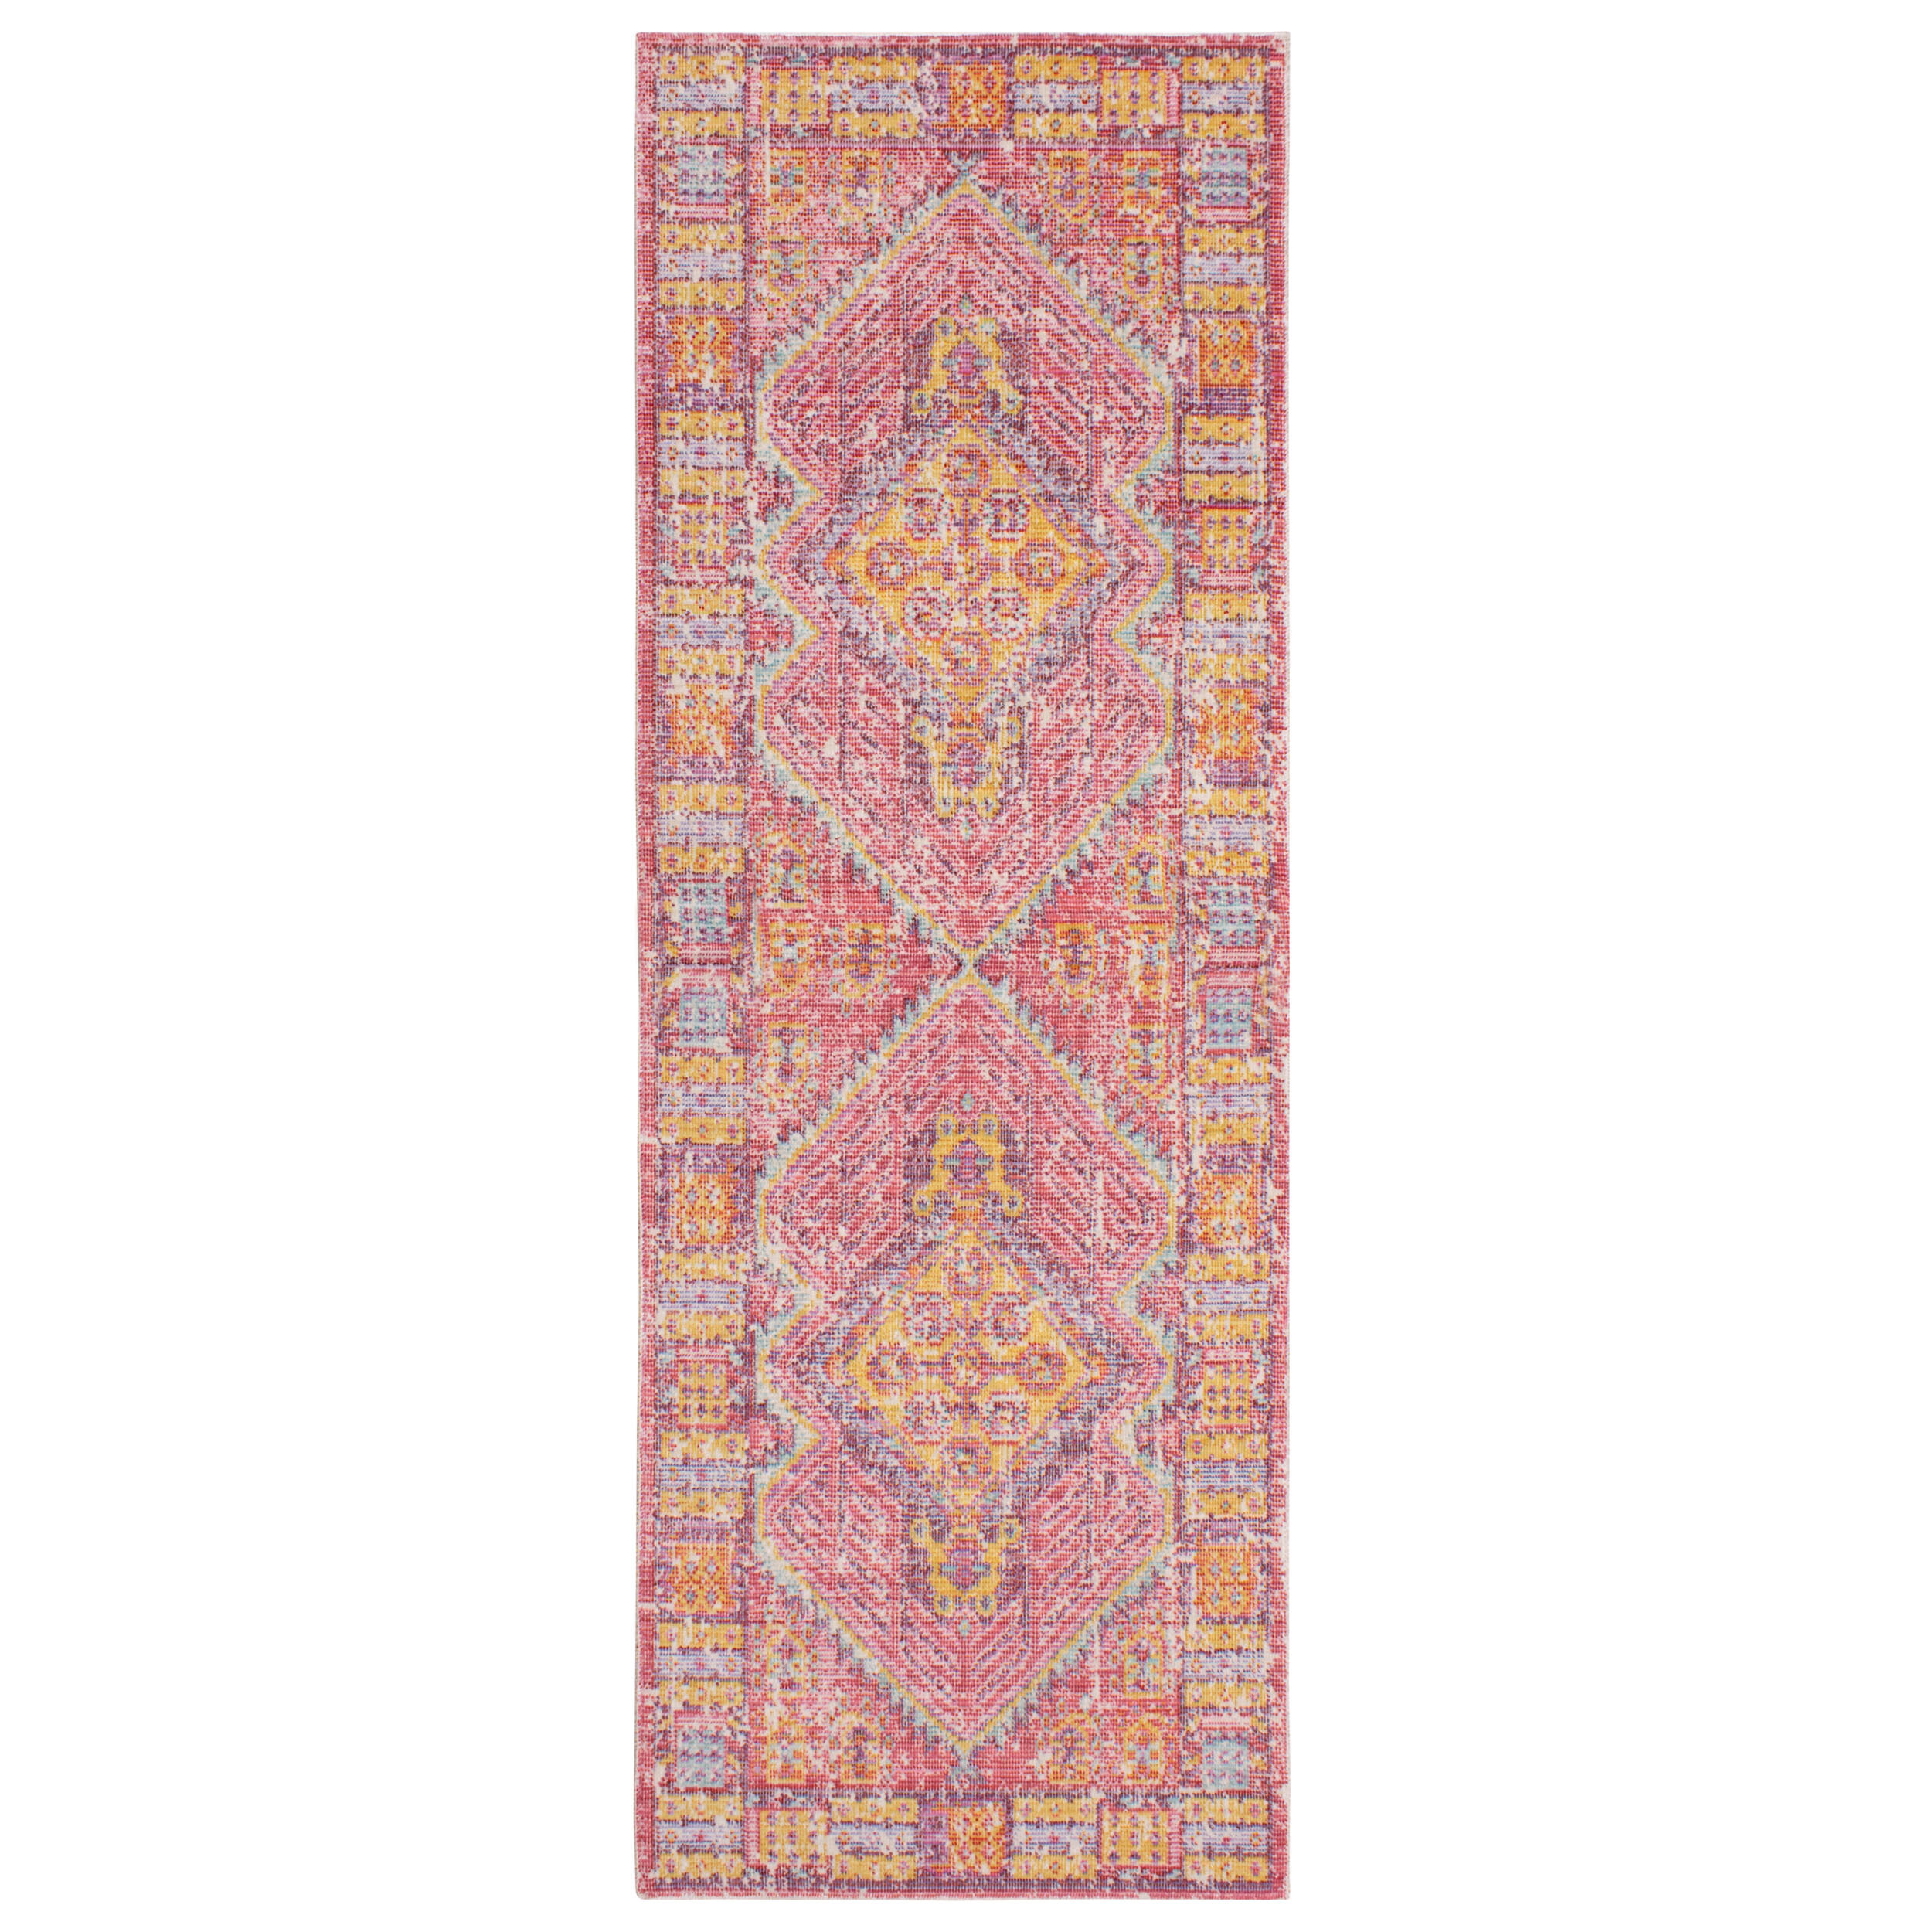 French Connection Tonio Colorwashed RedYellow Area Rug